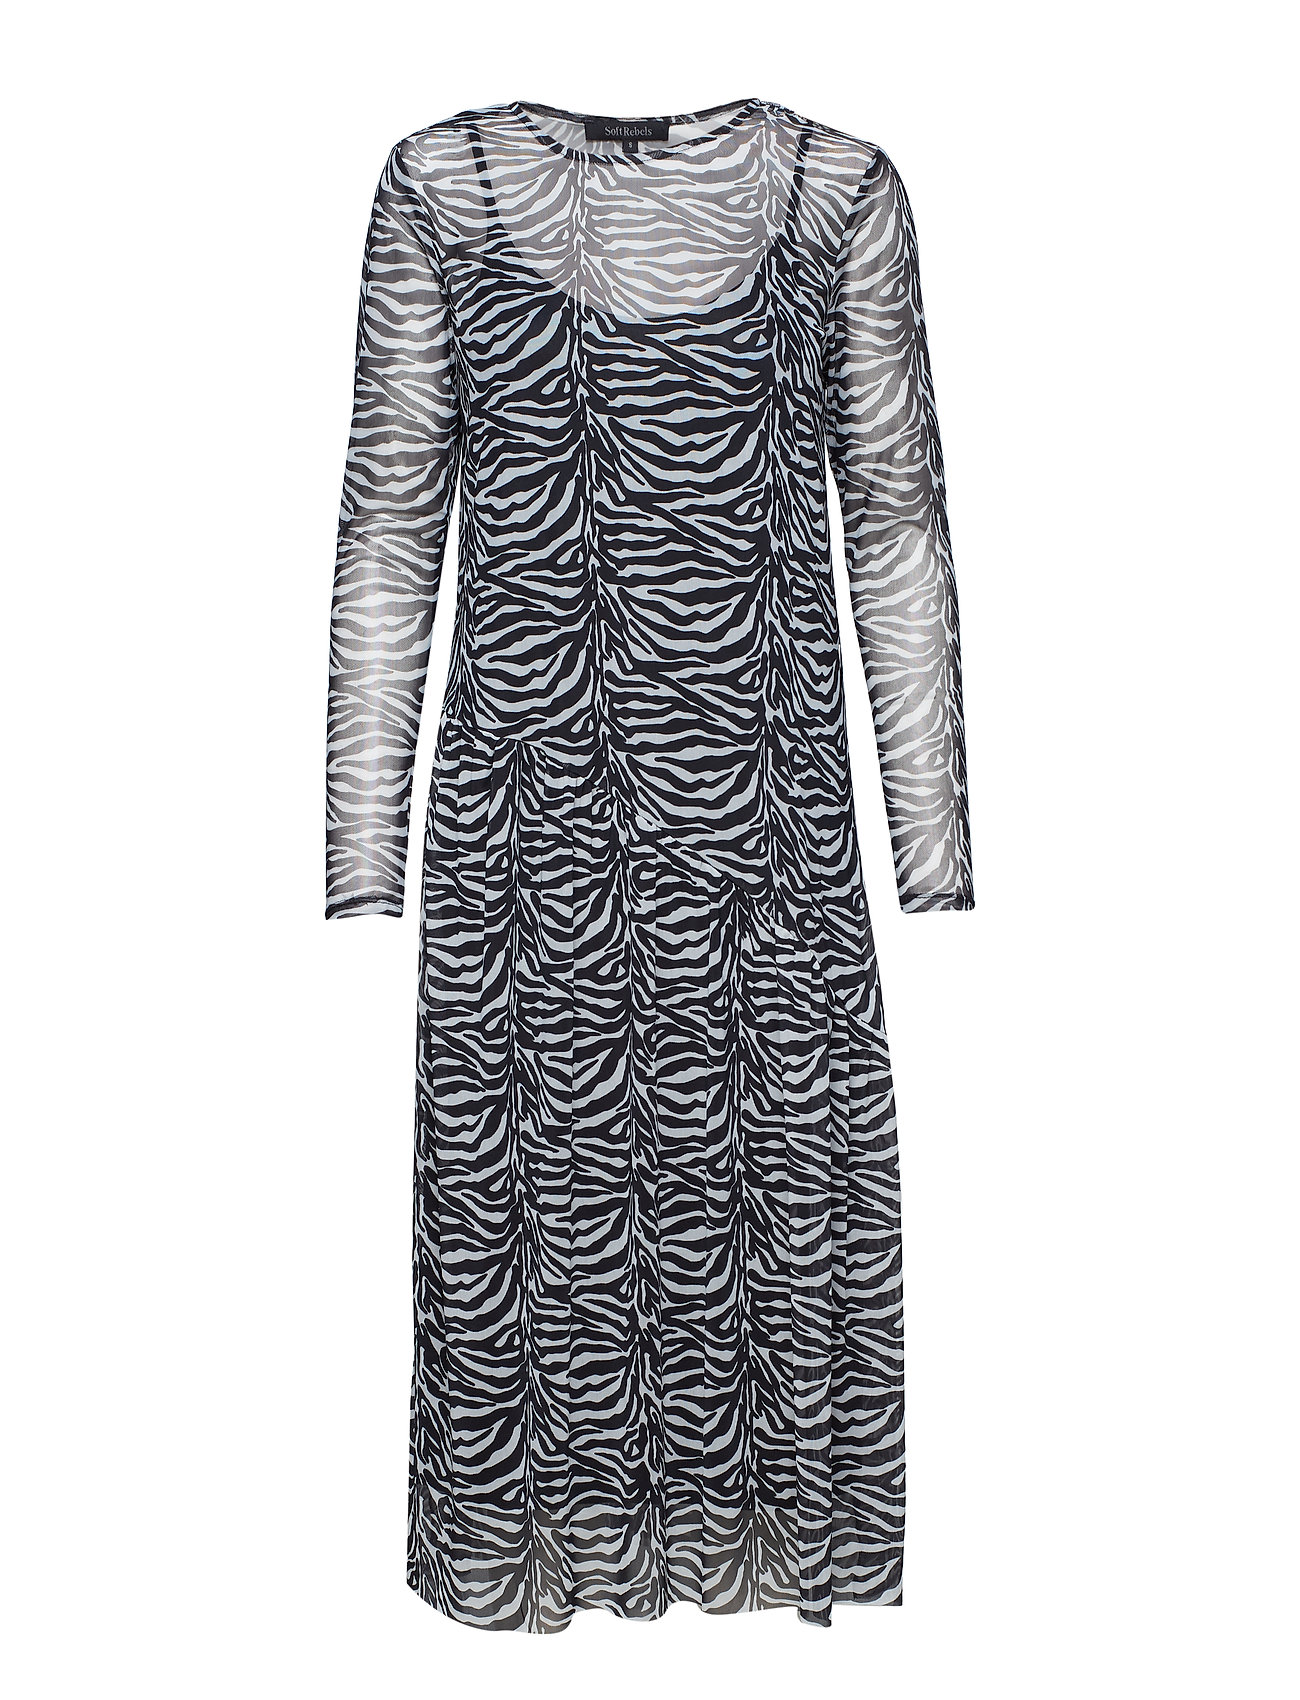 Soft Rebels Sandy Dress - ZEBRA